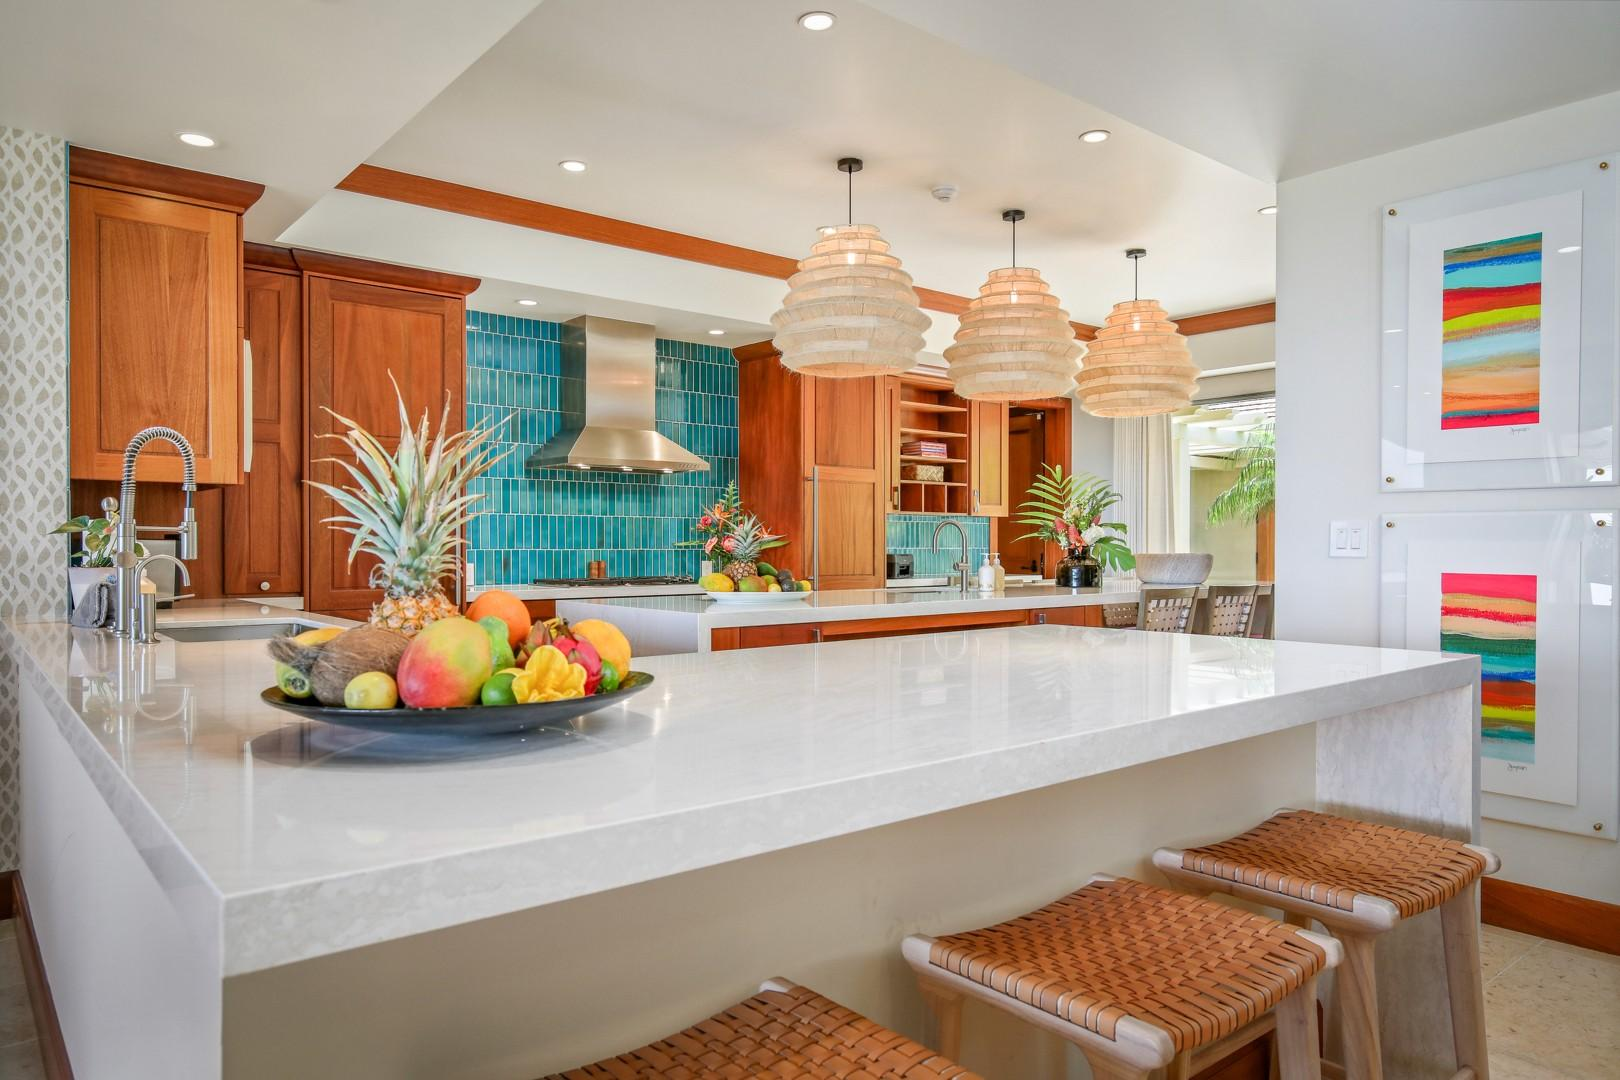 Top tier appliances throughout, this generous kitchen is the perfect hub for this flawless home.